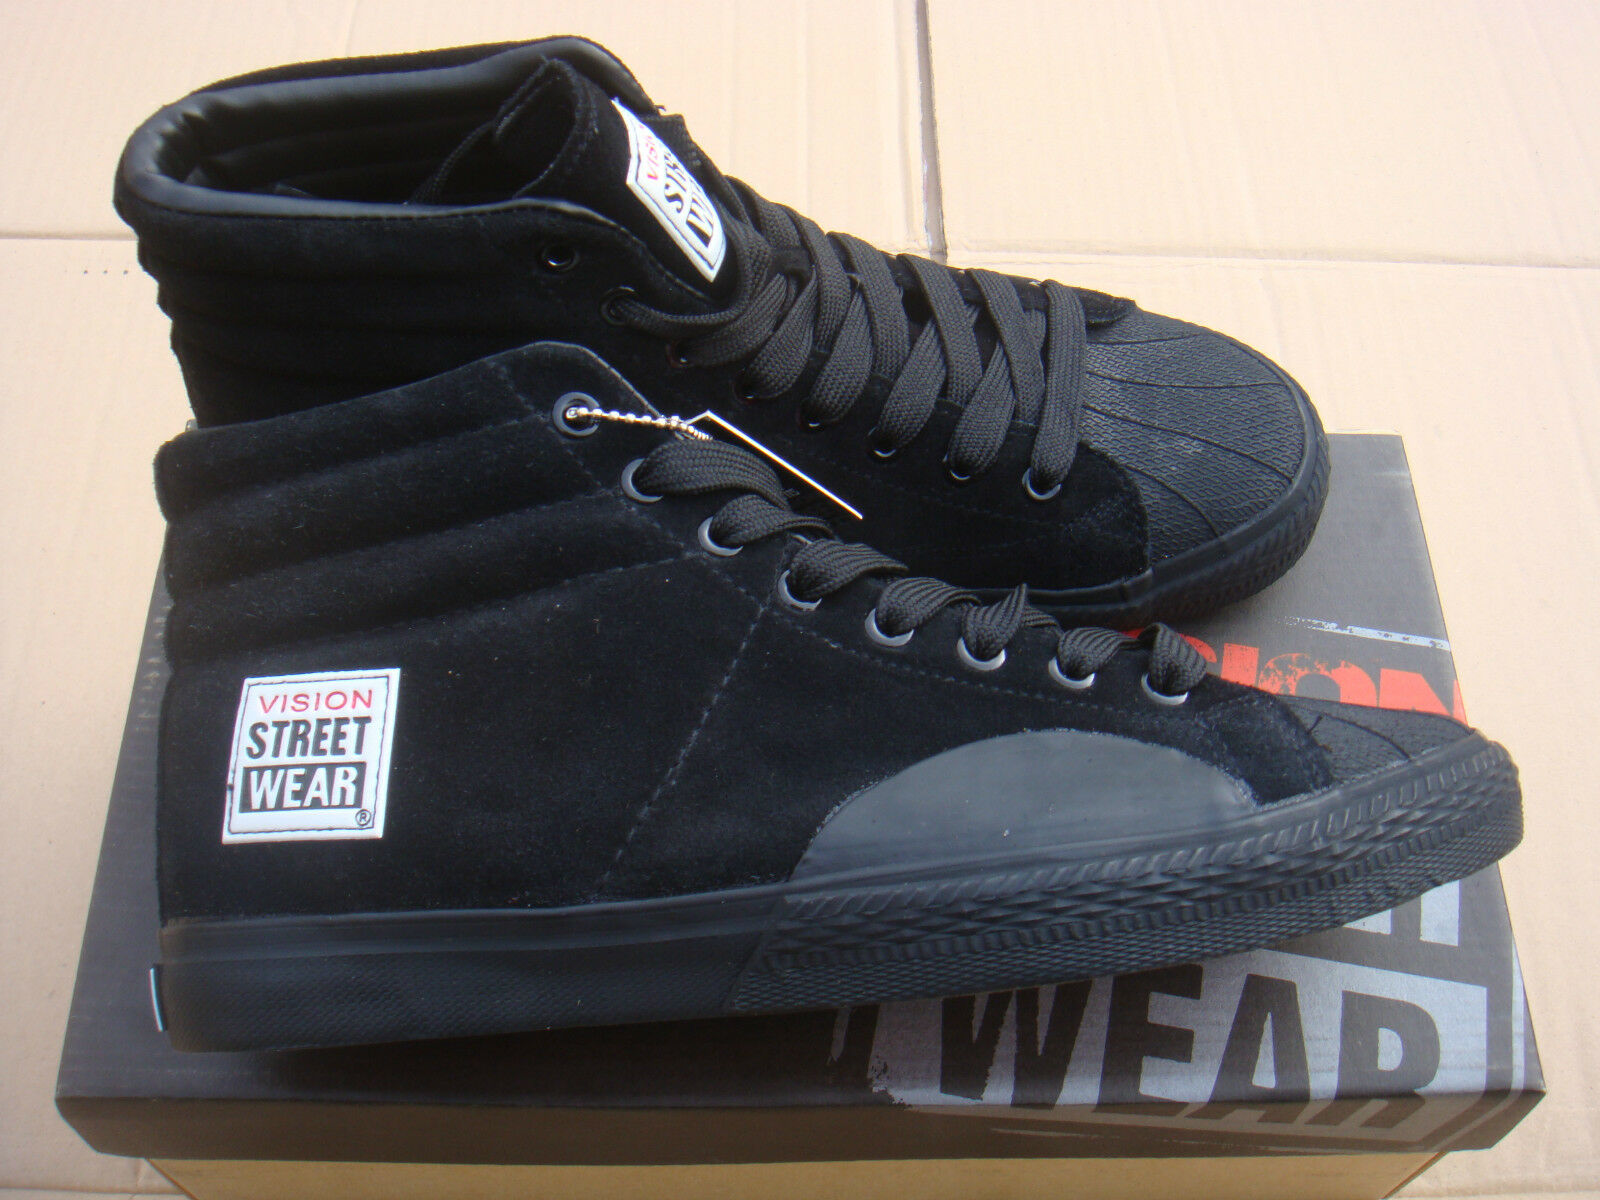 New SKATEBOARD BLACK vision street wear LEATHER HI trainers UK Größe 10